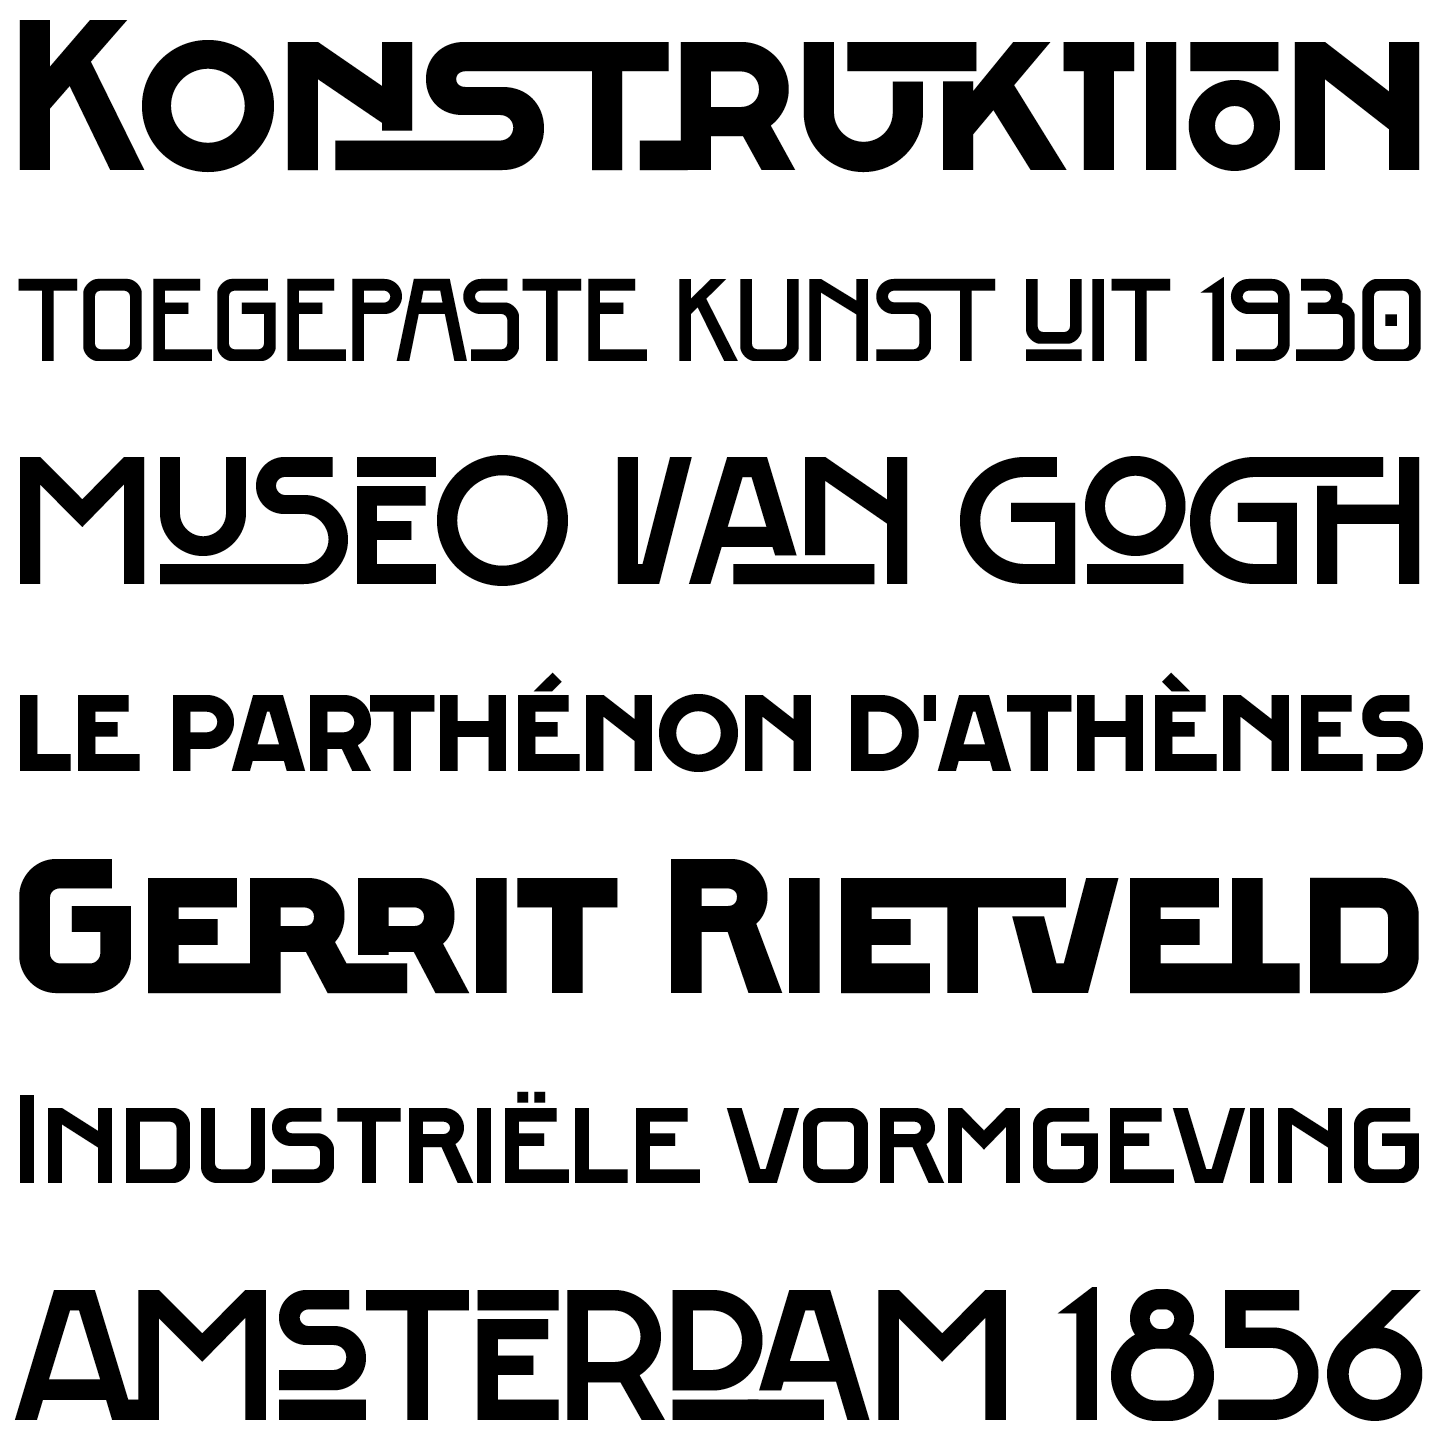 The FF Berlage Beurs and Burcht typefaces in combination.